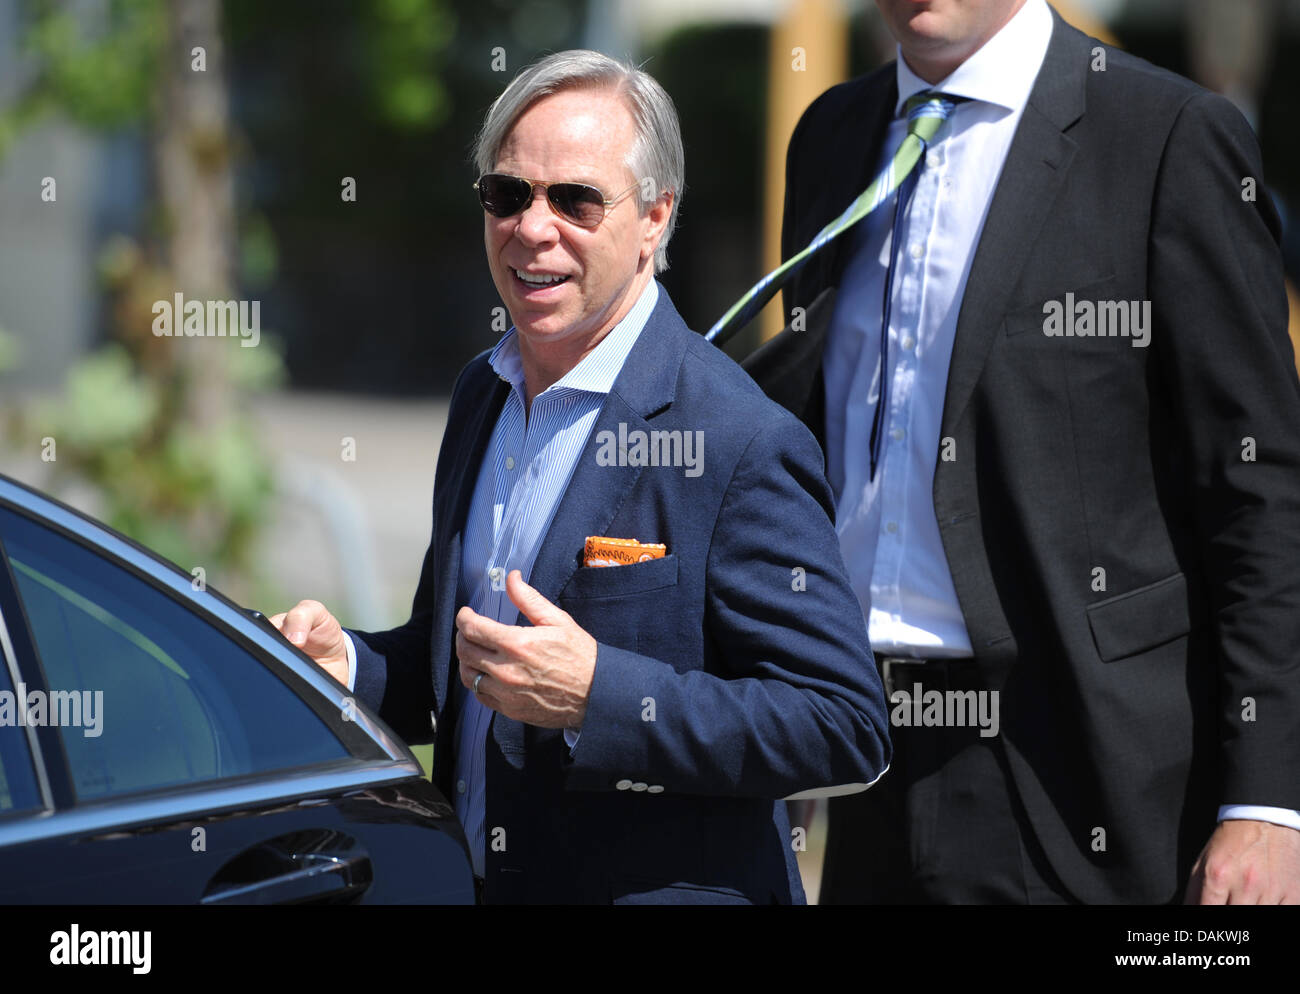 us fashion designer tommy hilfiger gets in his car after his visit to stock photo 58214864 alamy. Black Bedroom Furniture Sets. Home Design Ideas